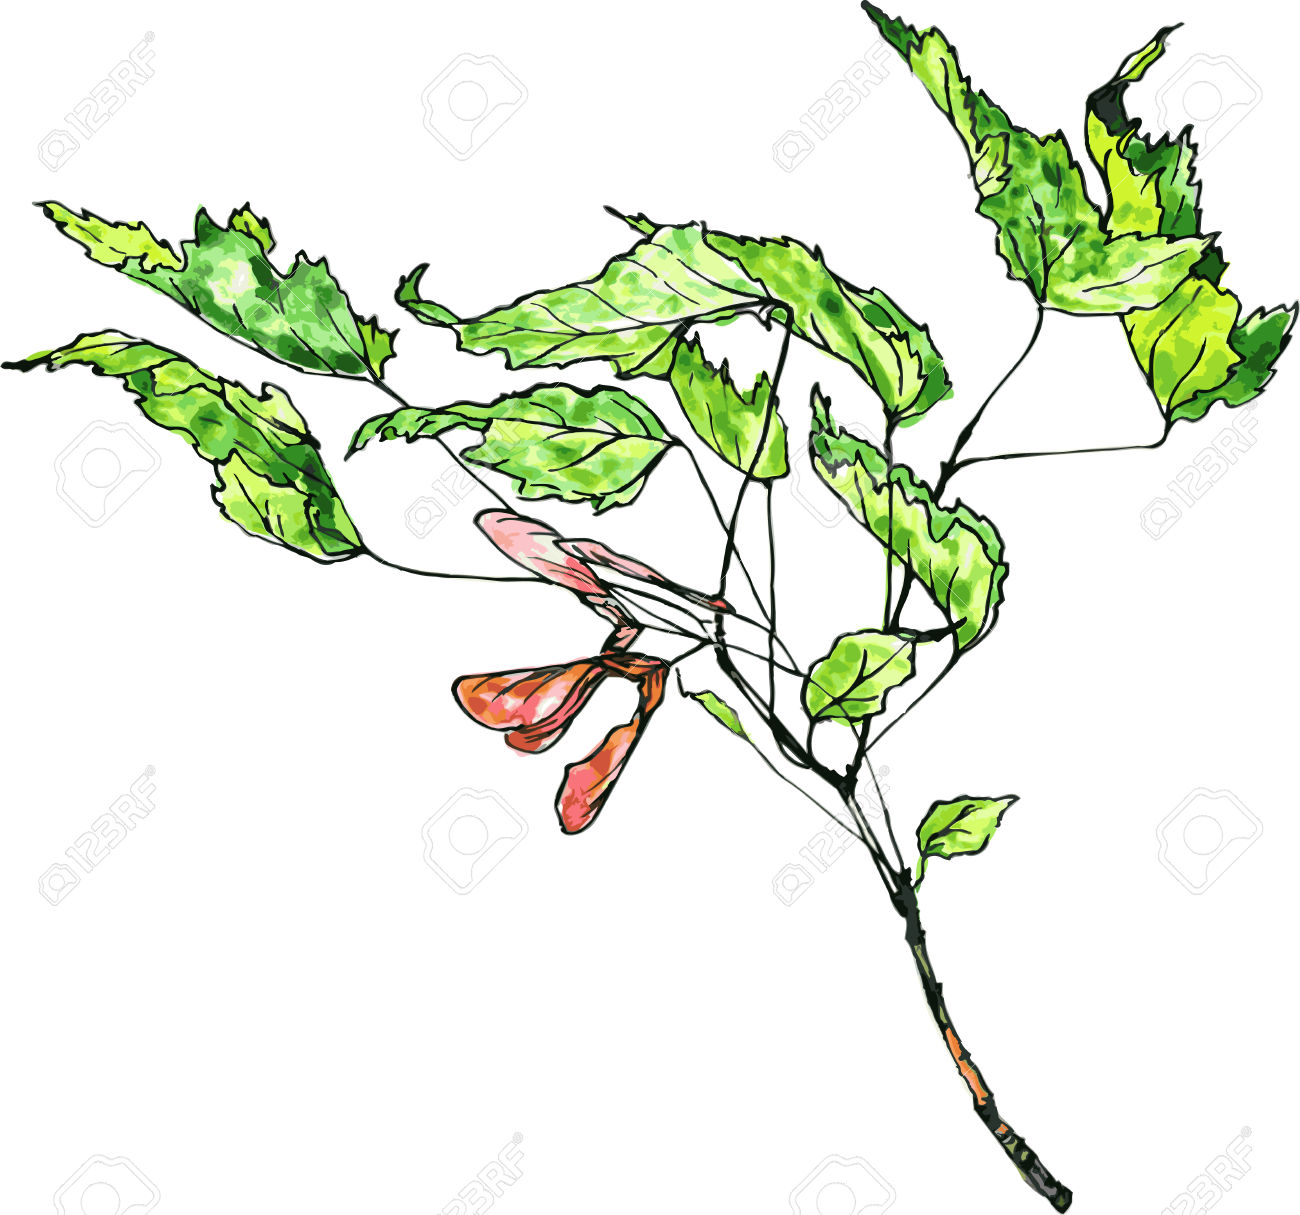 Hand Drawn Vector Watercolor Drawing Maple Twig With Green Leaves.